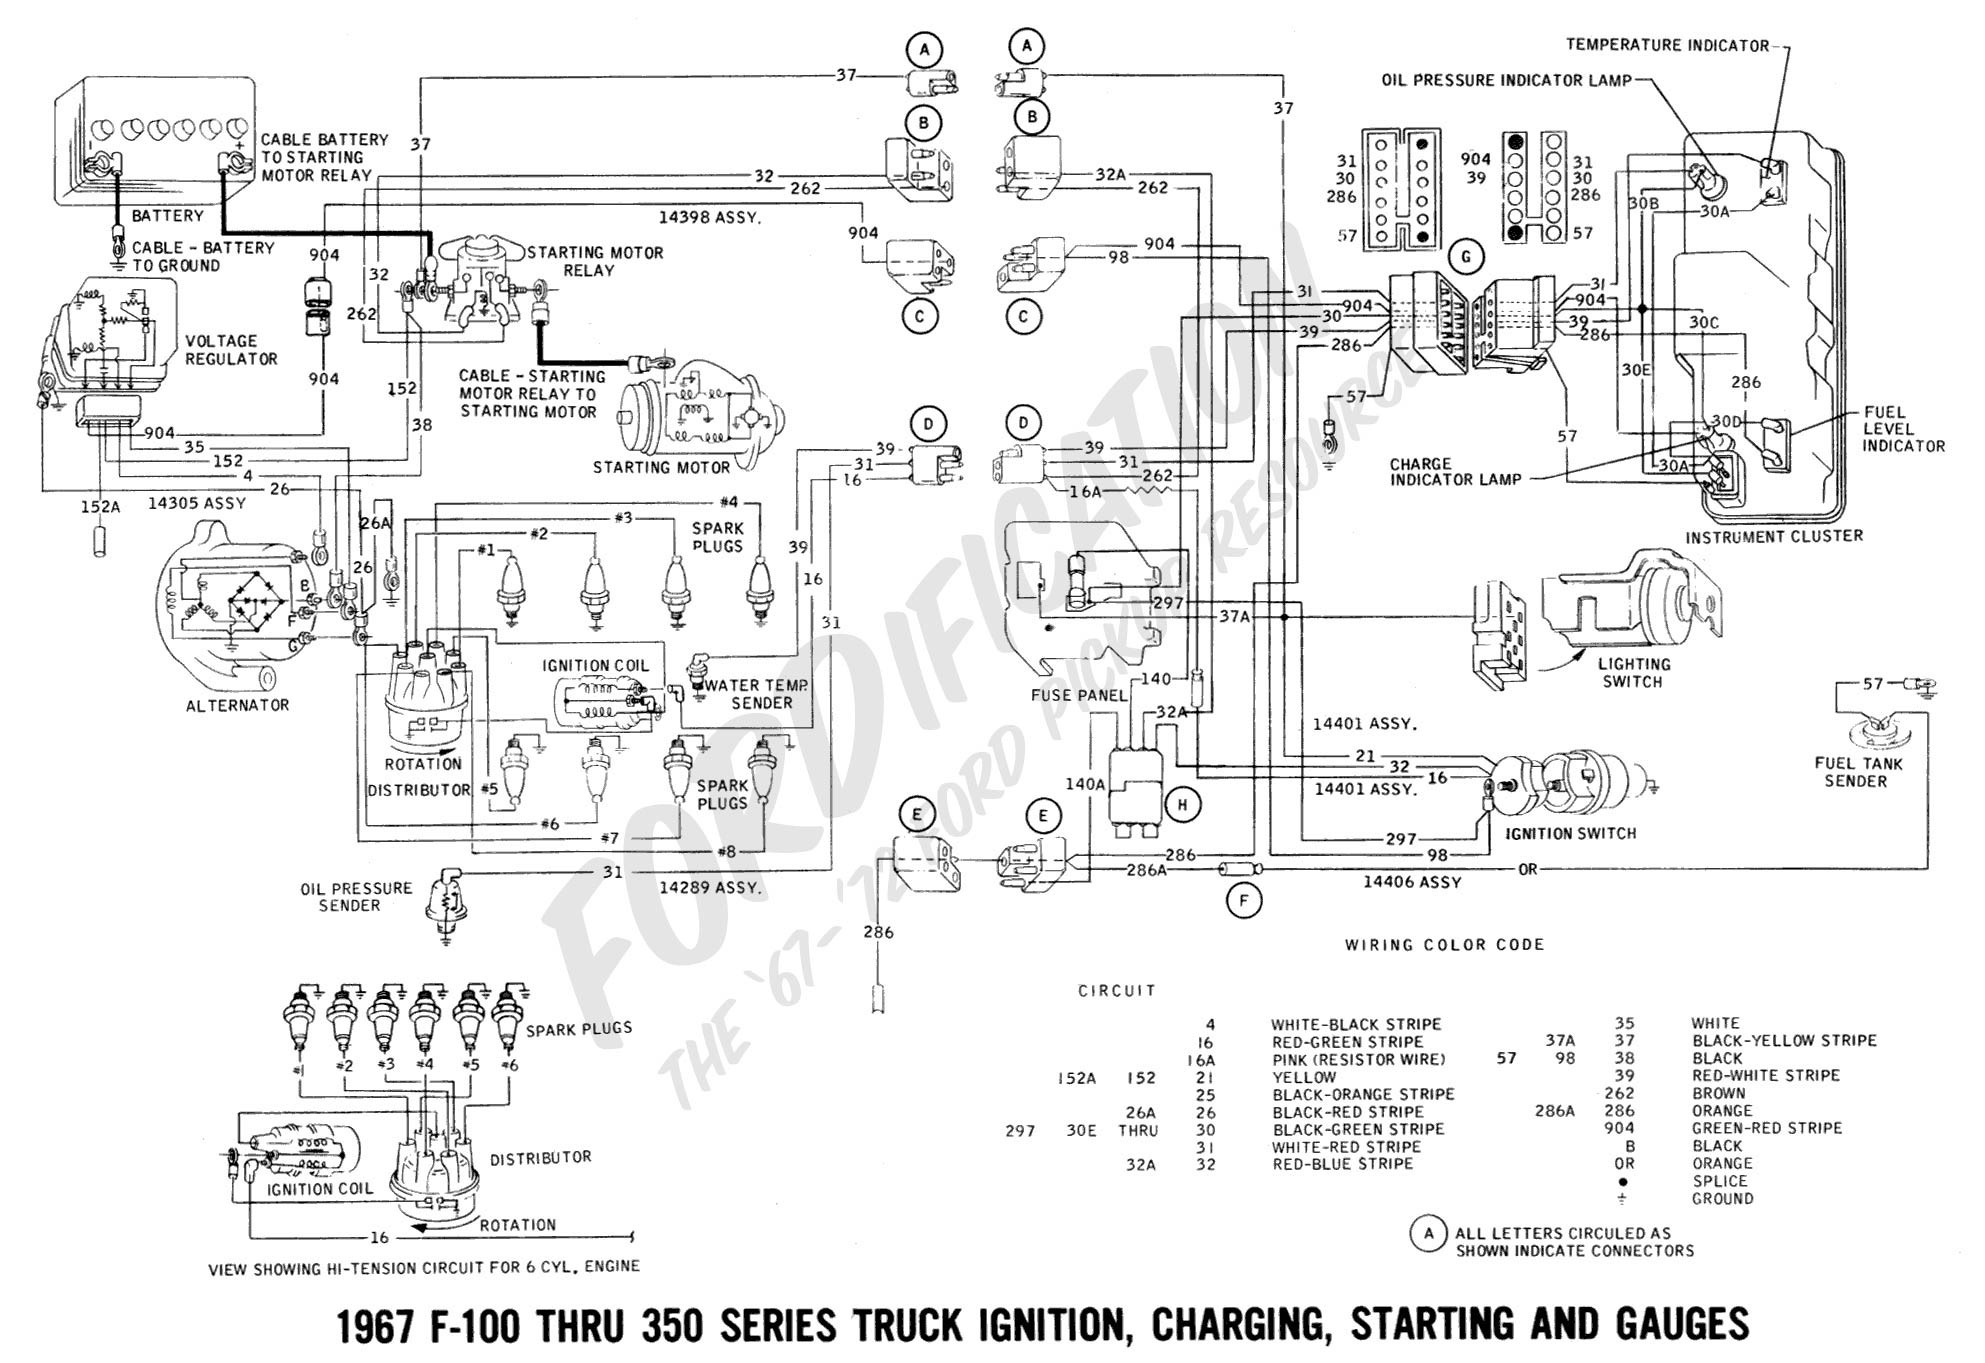 1994 ford F150 Wiring Diagram Best Ignition Coil Wiring Diagram Diagram Of  1994 ford F150 Wiring